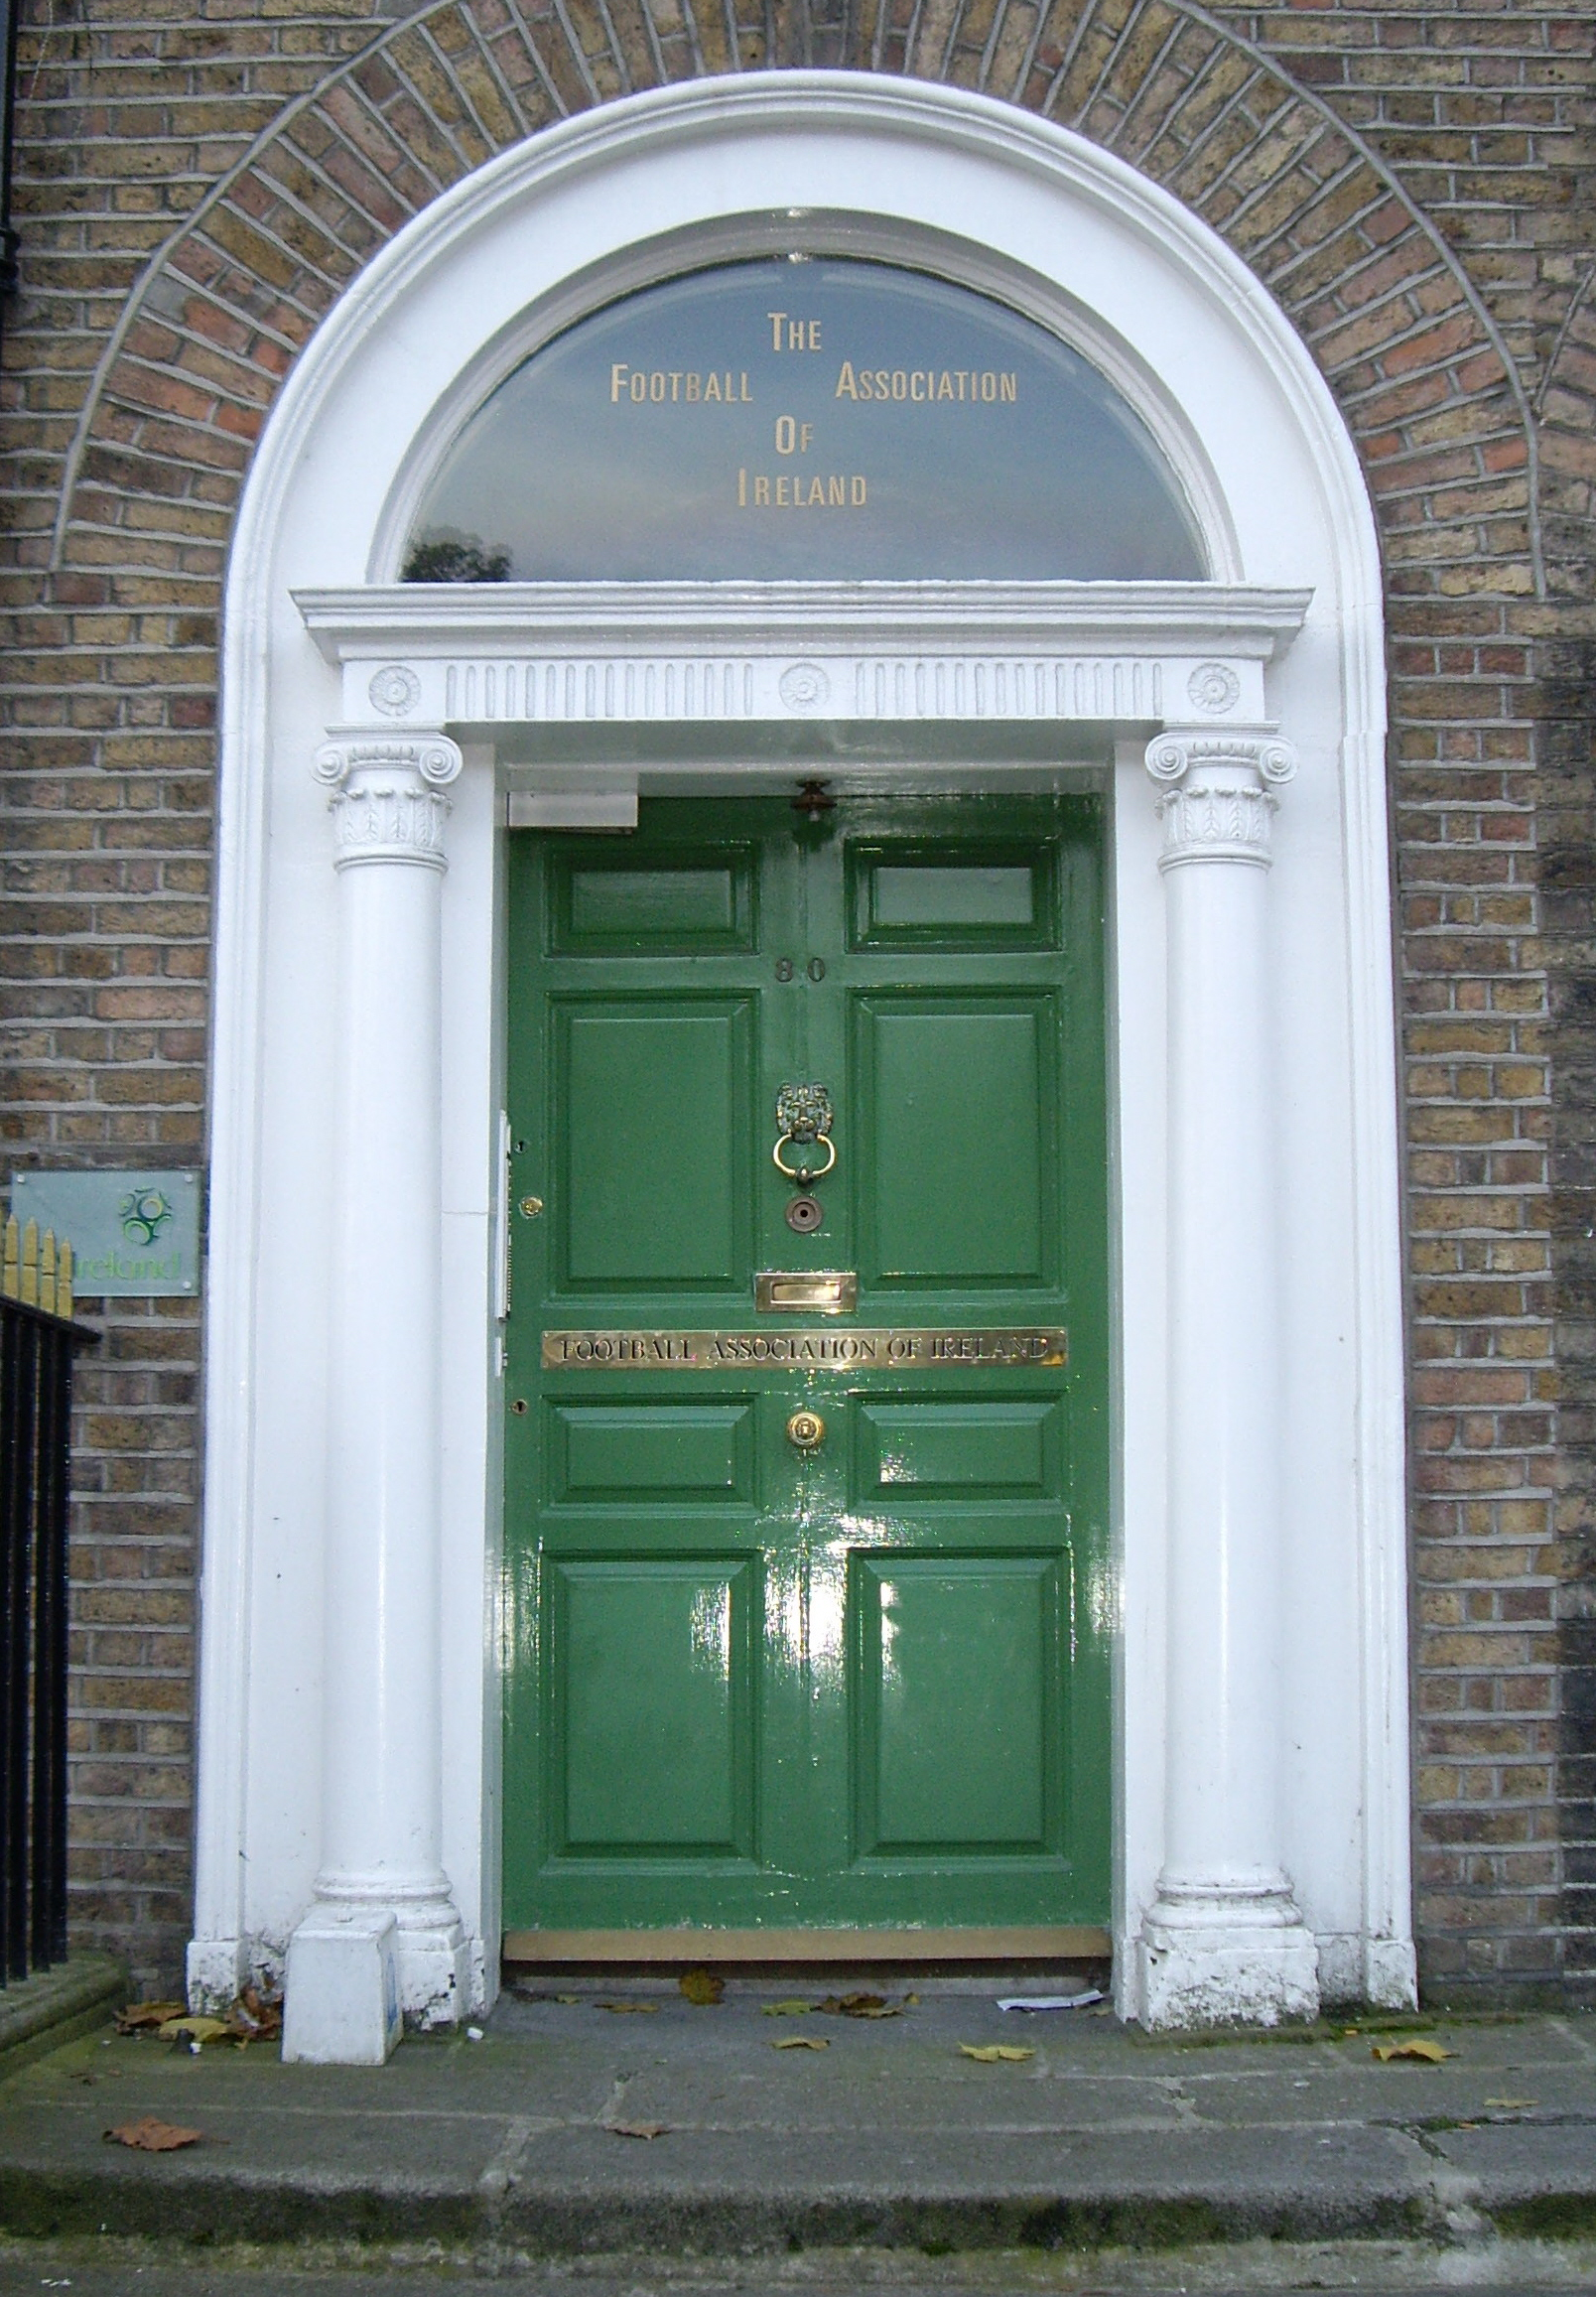 File:FAI green door.jpg - Wikipedia